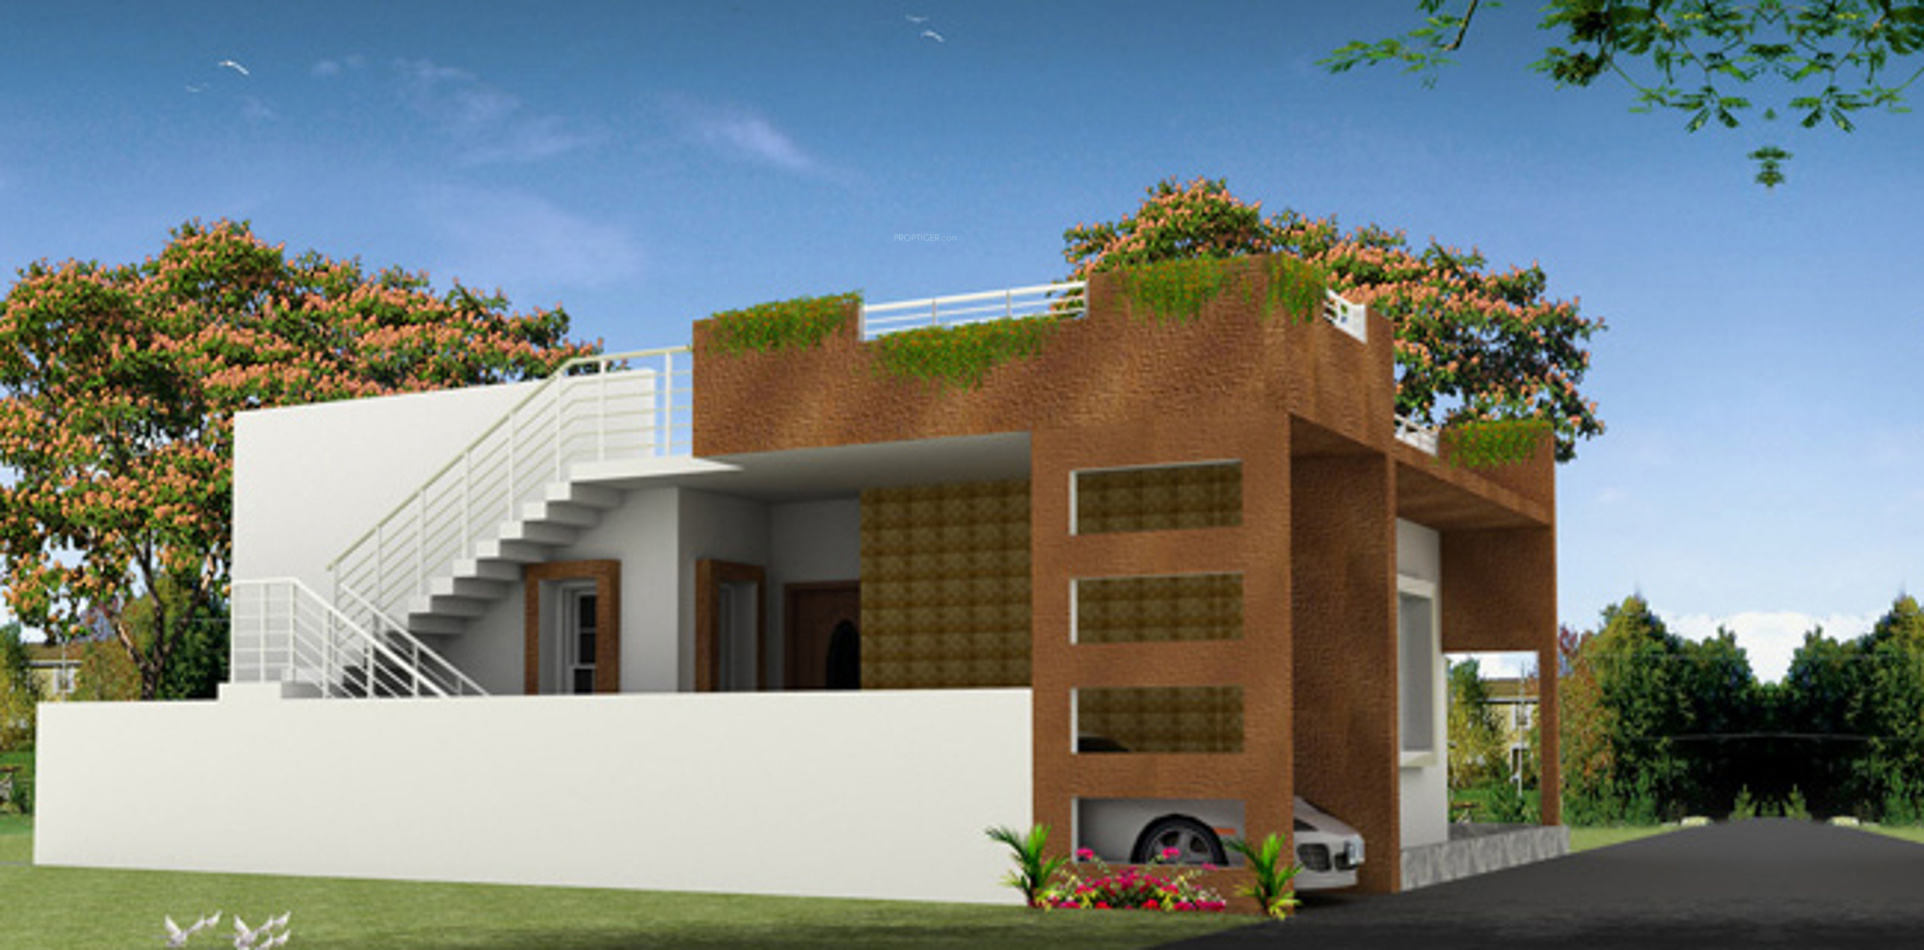 1600 sq ft 3 bhk 3t villa for sale in renaatus projects for 1600 sq ft house cost